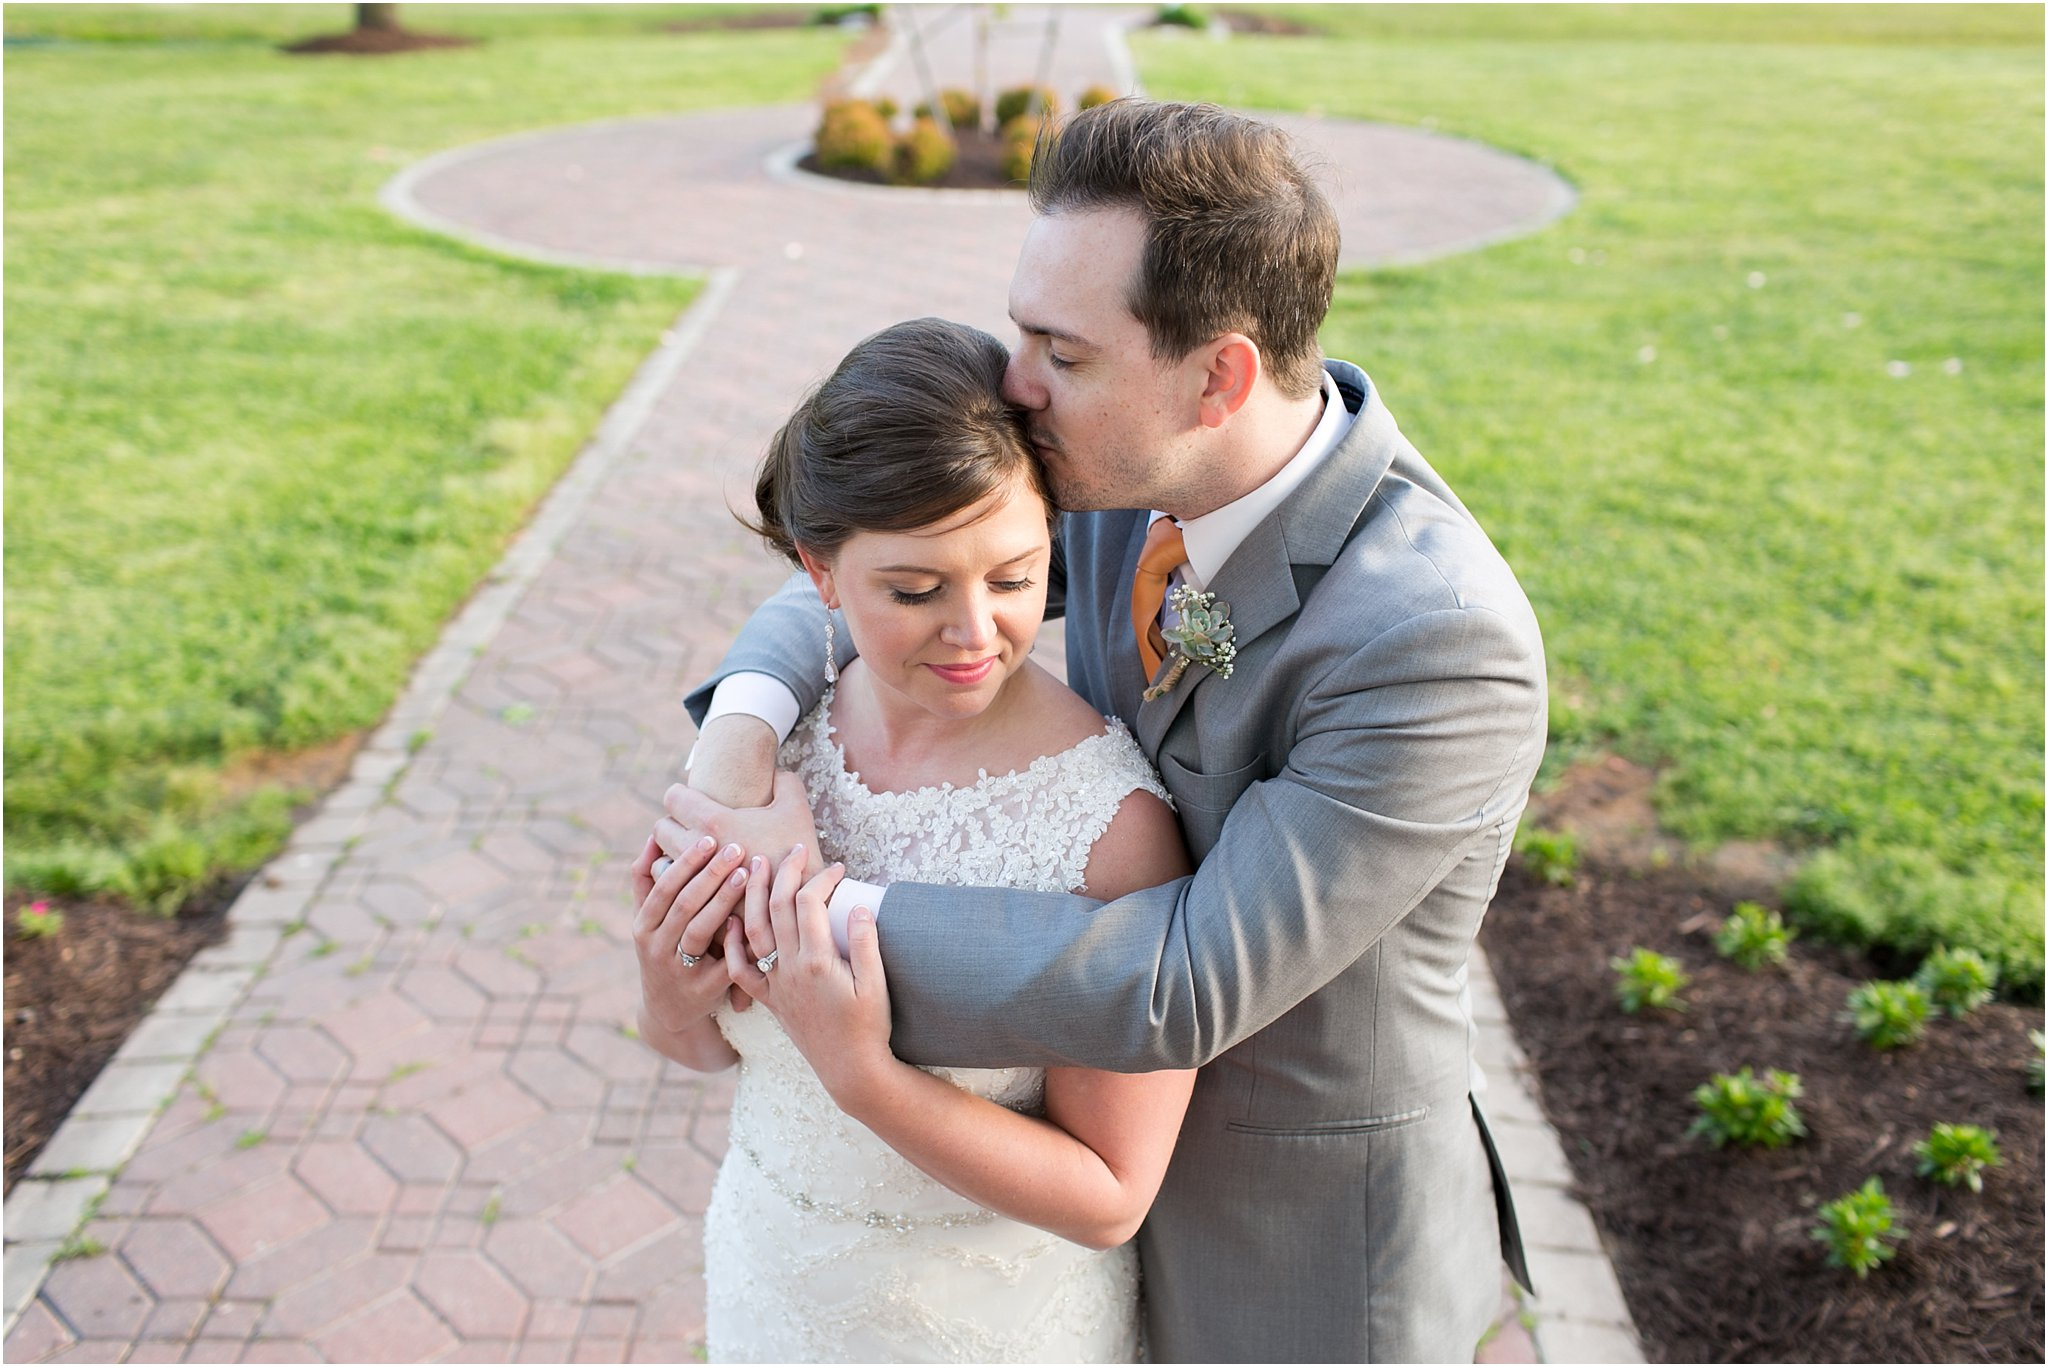 jessica_ryan_photography_holly_ridge_manor_wedding_roost_flowers_jamie_leigh_events_dhalia_edwards_candid_vibrant_wedding_colors_1321